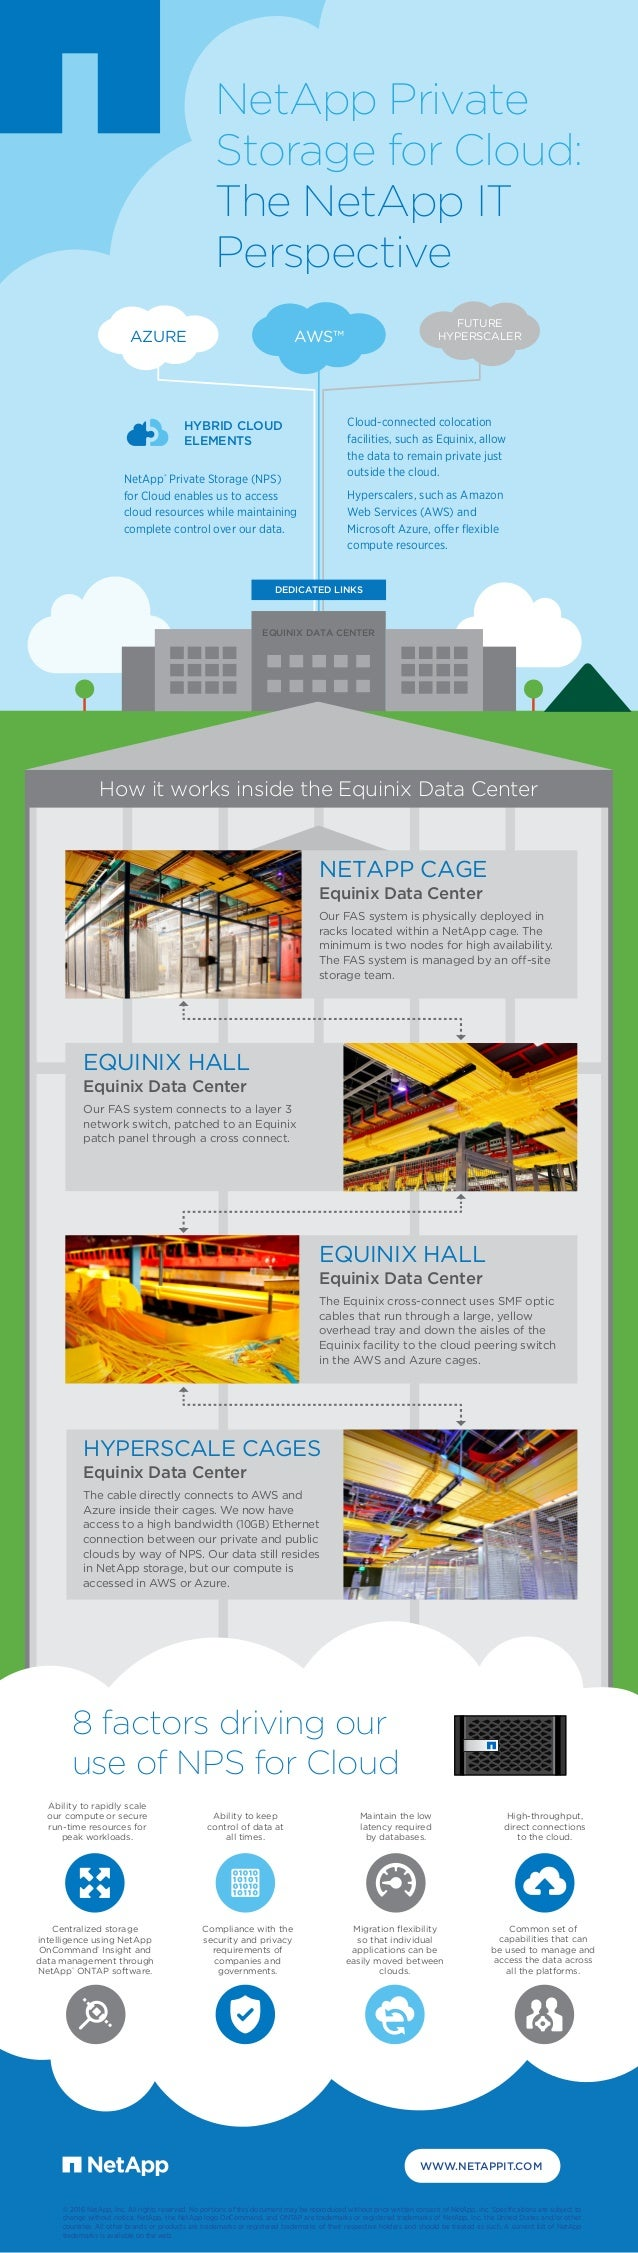 WWW.NETAPPIT.COM © 2016 NetApp, Inc. All rights reserved. No portions of this document may be reproduced without prior wri...